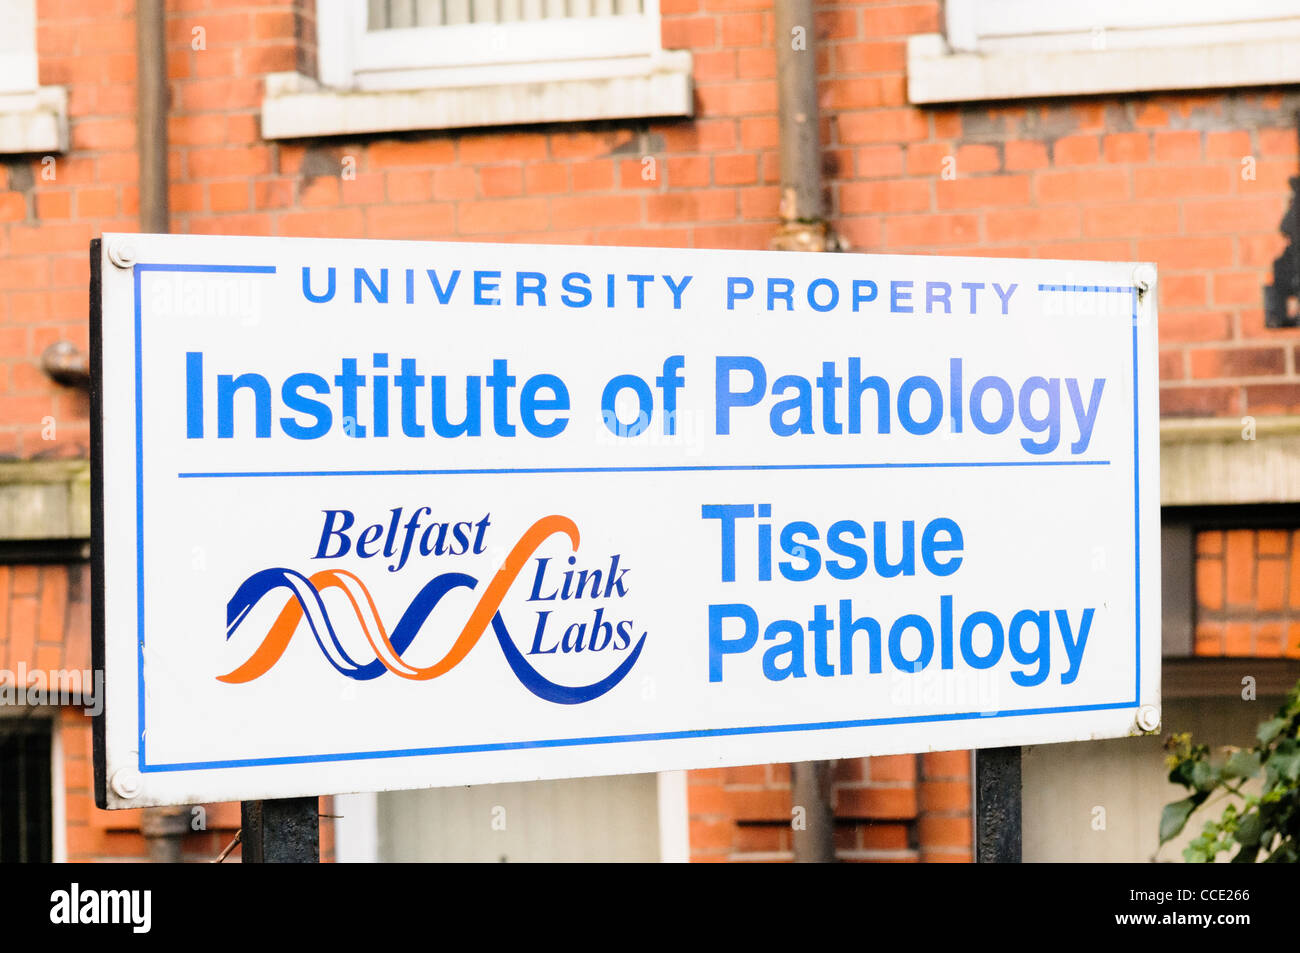 Sign for the Belfast Link Labs, medical and blood testing laboratories, at the Royal Victoria Hospital, Belfast - Stock Image